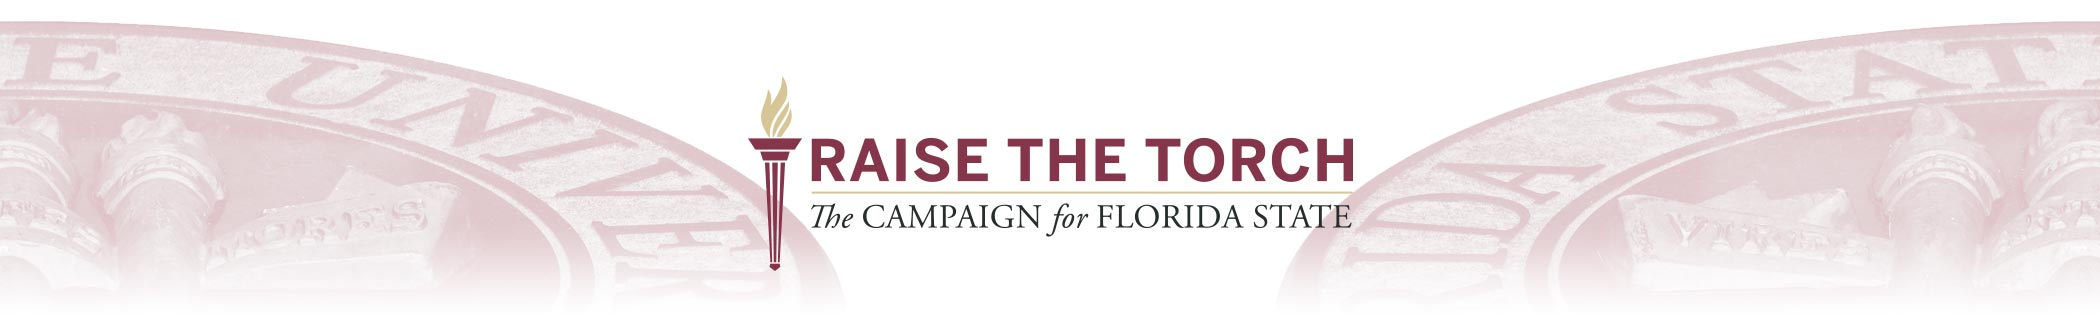 Raise The Torch: The Campaign for Florida State logo in front of two faded FSU seals